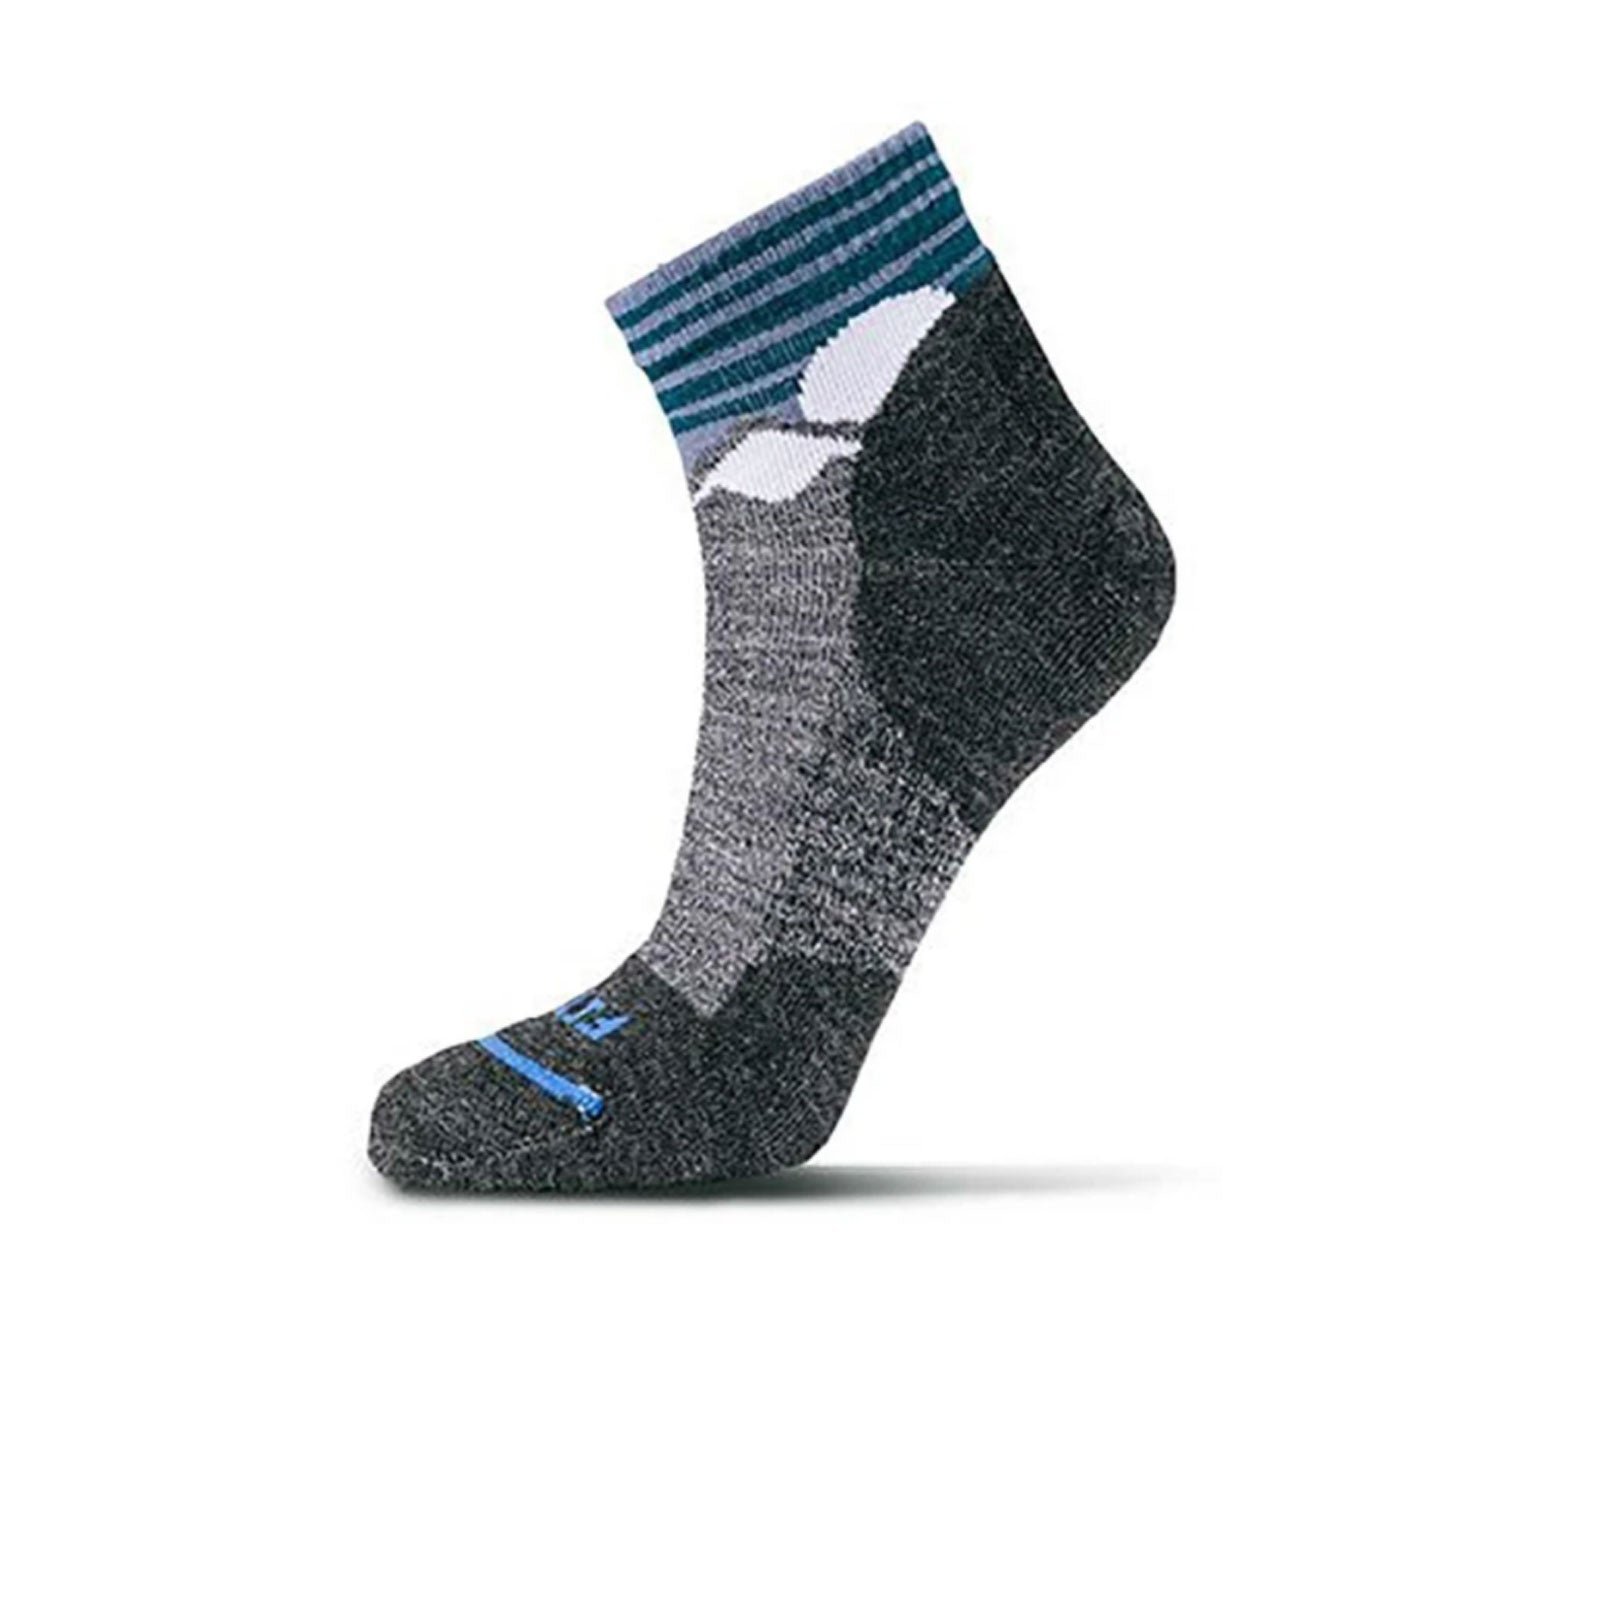 Fits Light Hiker Quarter (Unisex) - Coal Socks - Perf - Mid Crew - The Heel Shoe Fitters